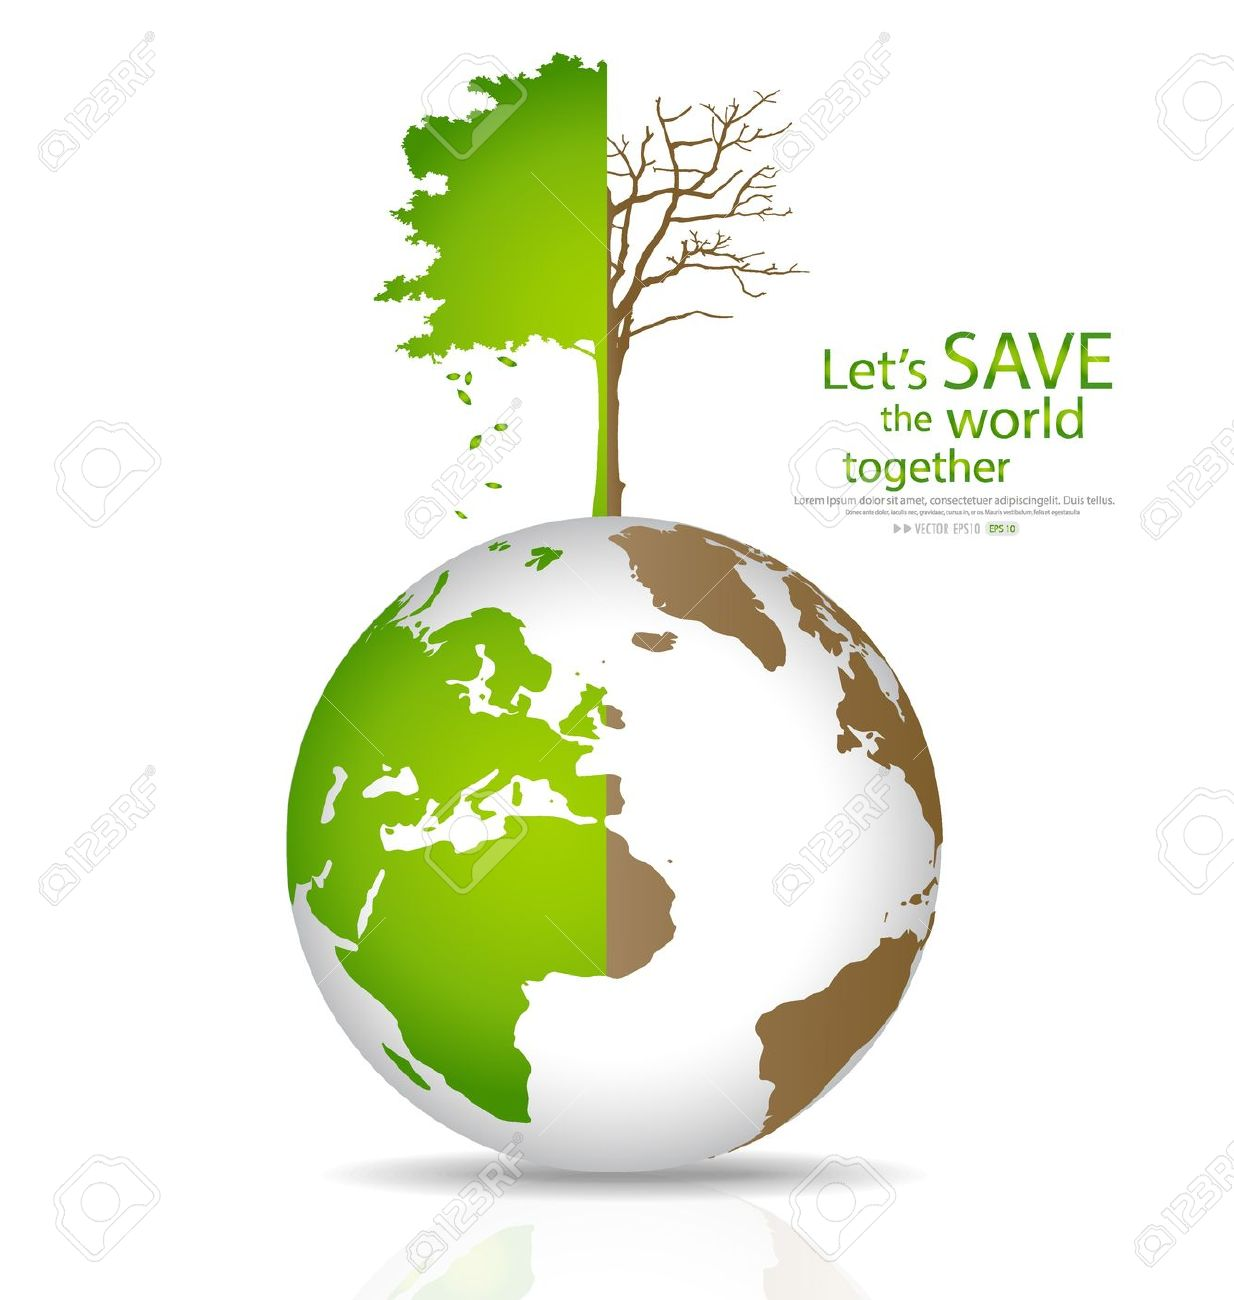 Plant trees save earth clipart.